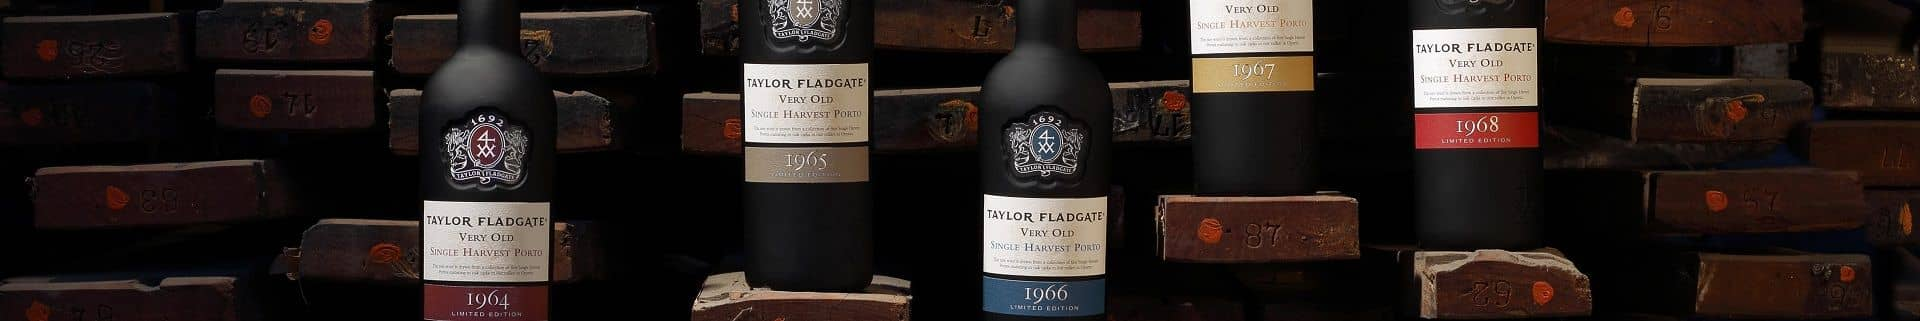 Single Harvest Port Wine bottles from Taylor Fladgate